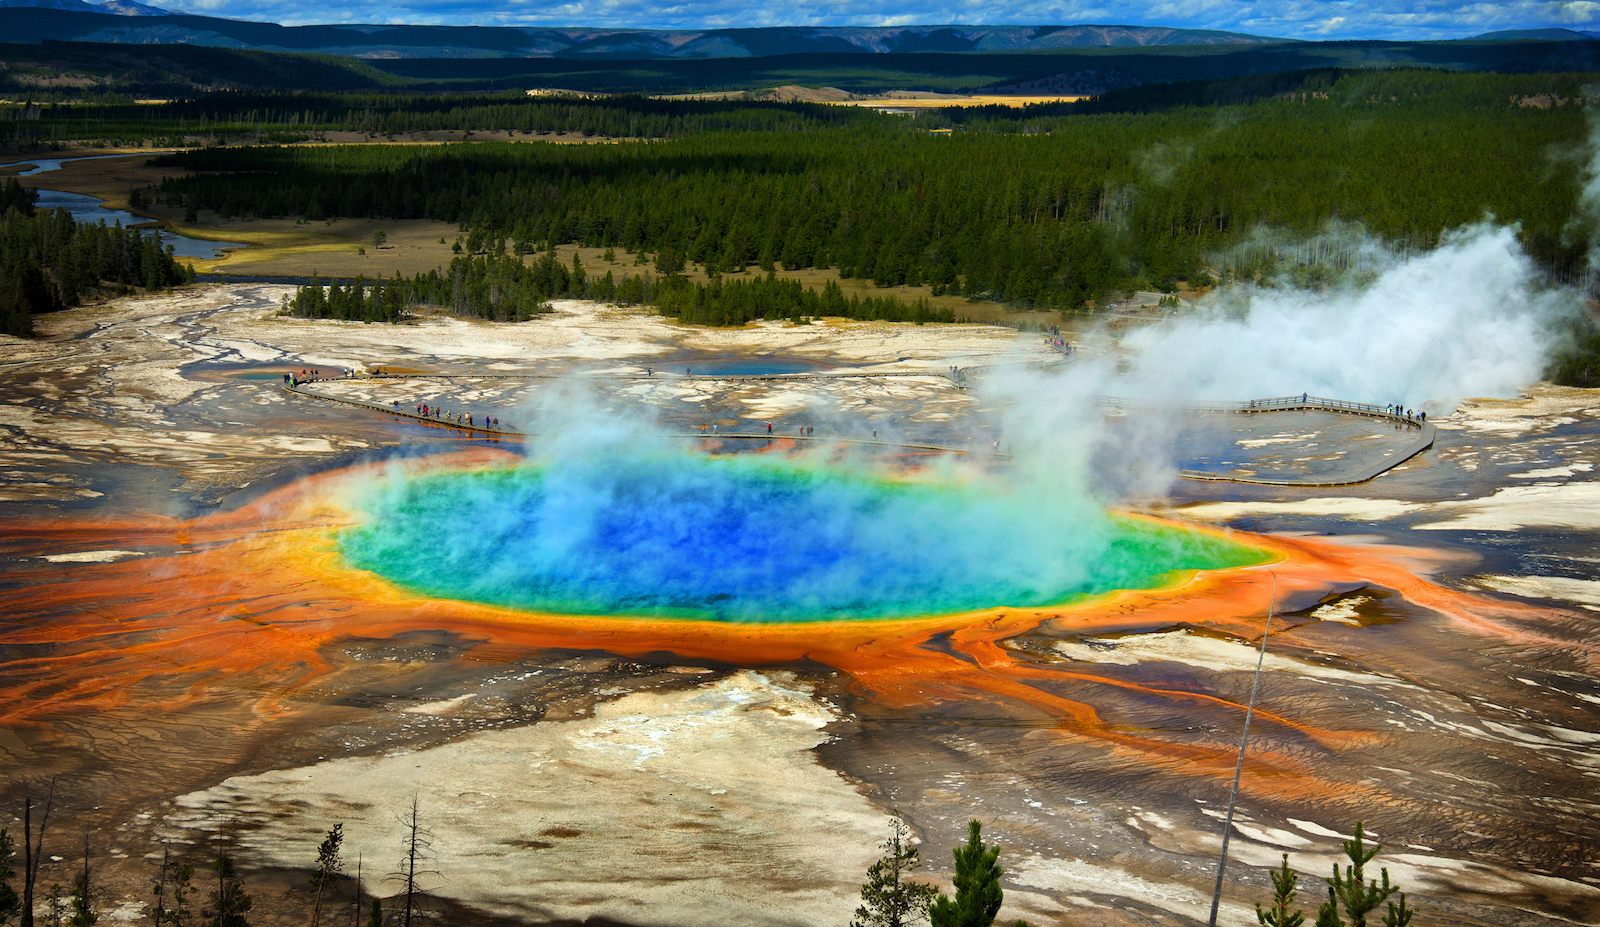 How to Plan a Yellowstone National Park Trip | GyPSy Guide